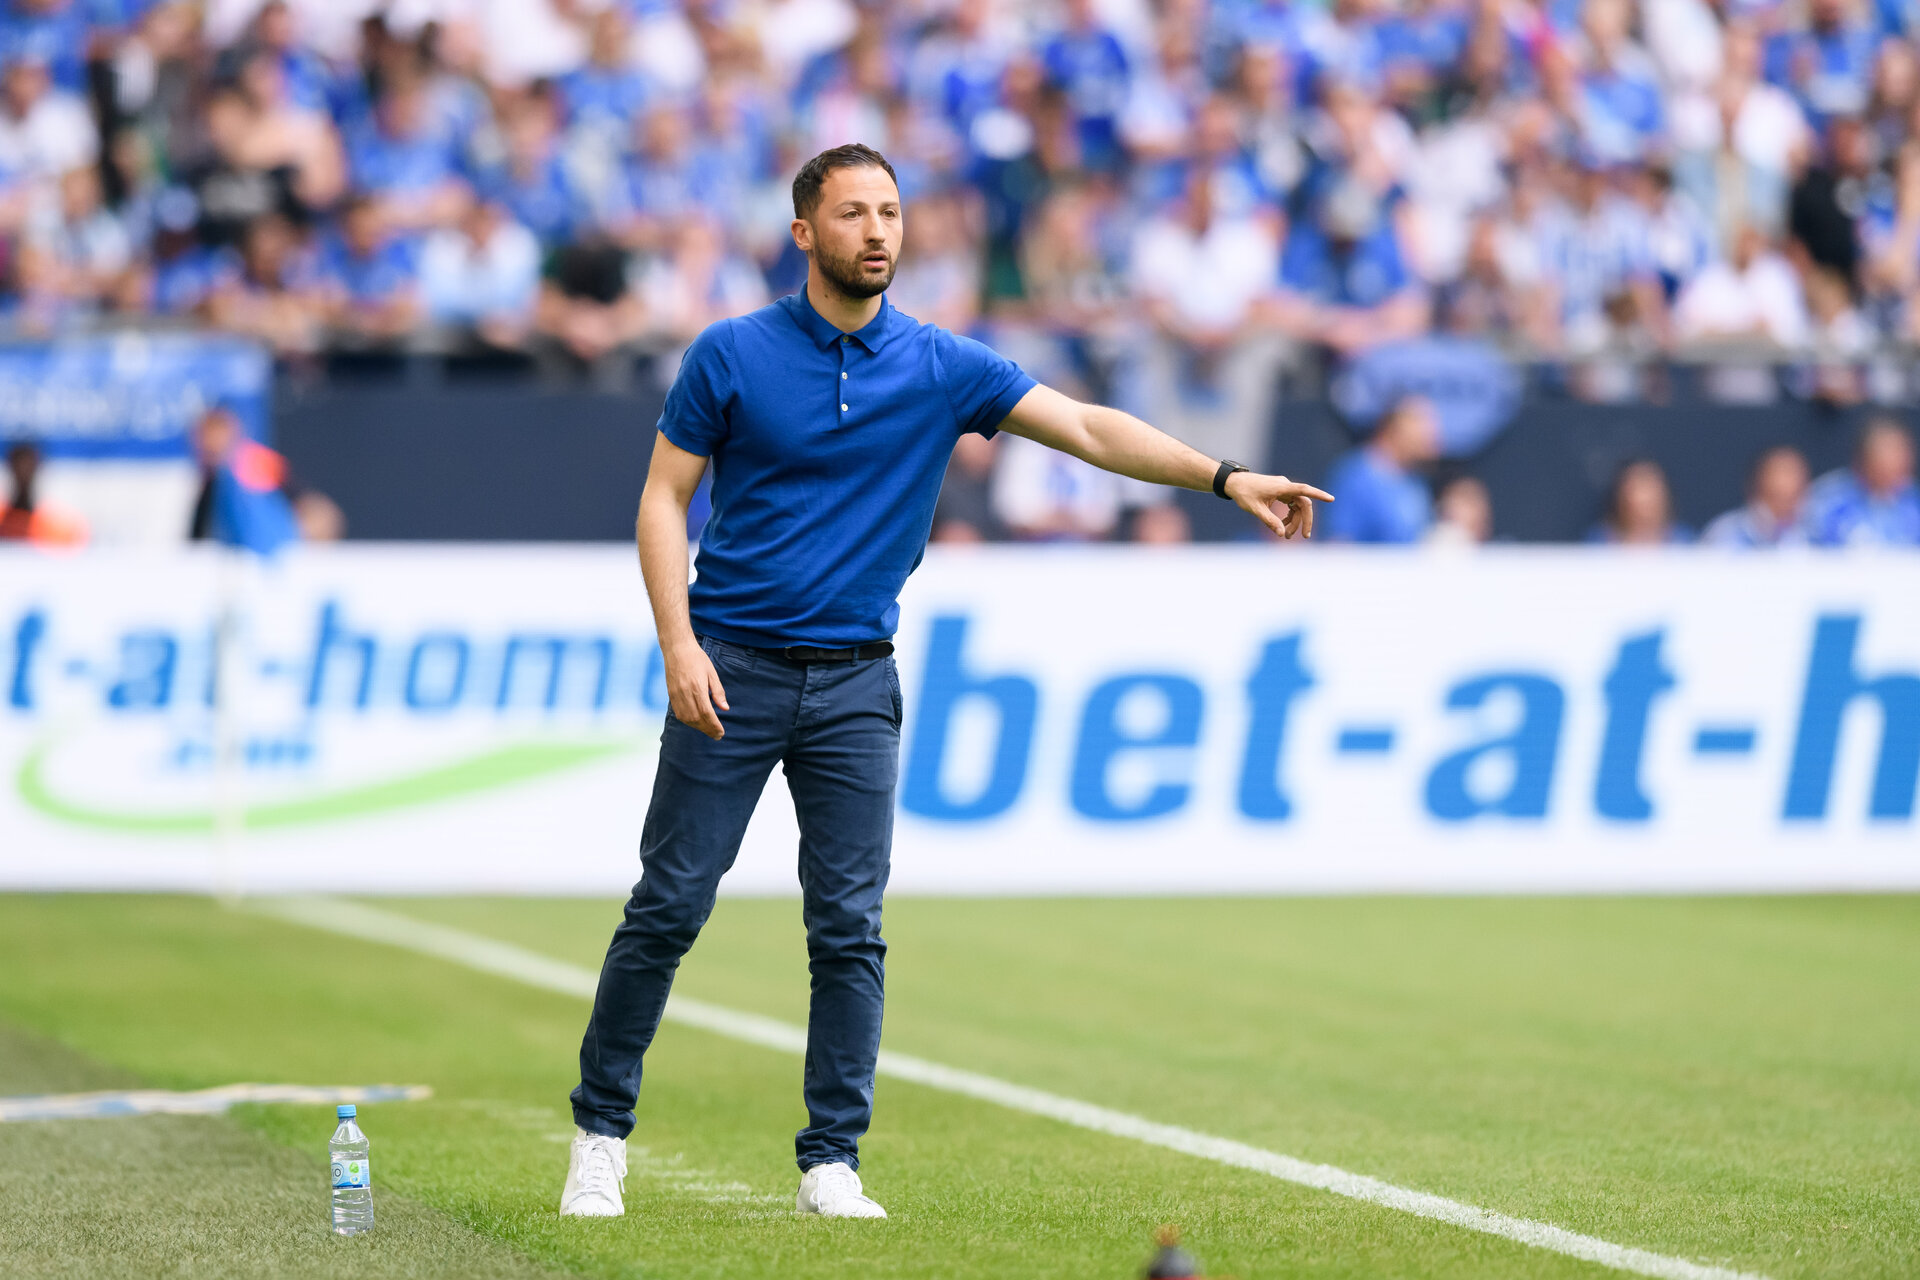 GELSENKIRCHEN, GERMANY - May 12: Head coach Domenico Tedesco of Schalke gestures during the Bundesliga match between FC Schalke 04 and Eintracht Frankfurt at Veltins Arena on May 12, 2018 in Gelsenkirchen, Germany. (Photo by TF-Images/Getty Images)